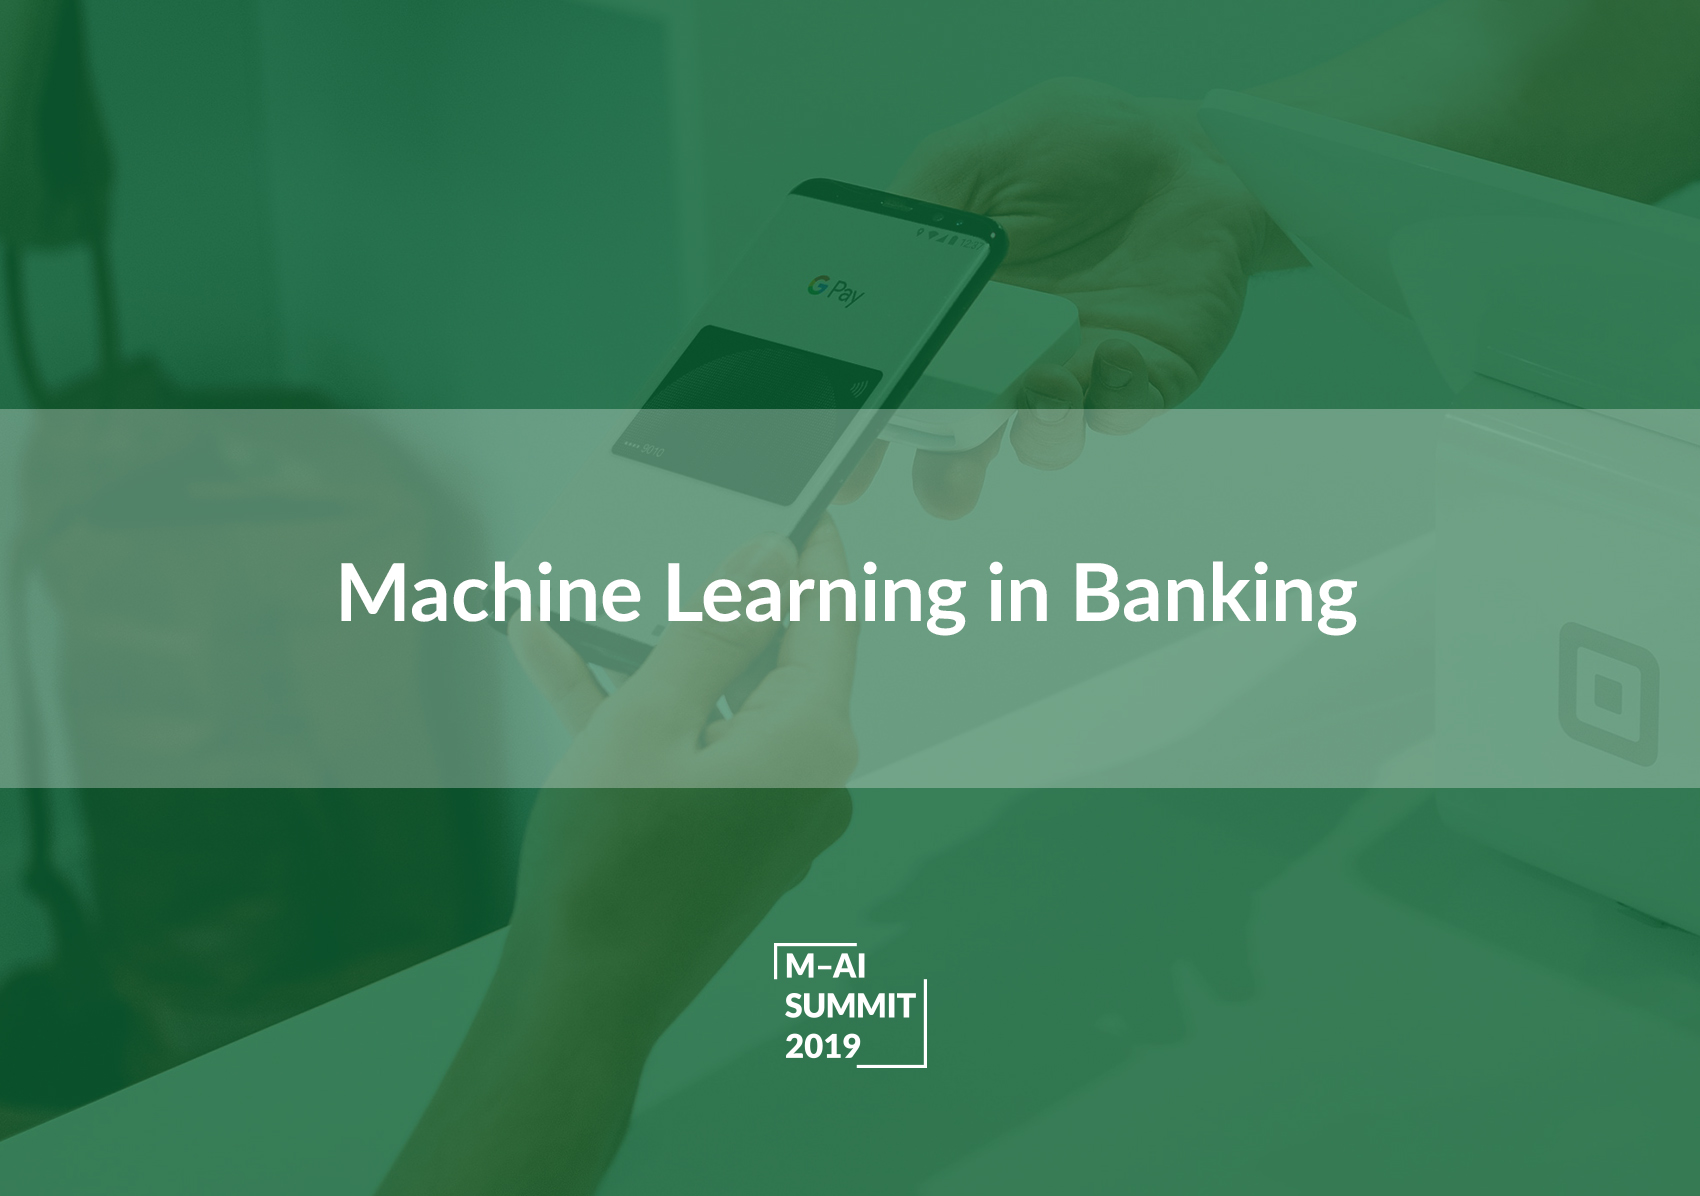 AI is in Banking Industry to Make Financial Processes More Accurate and Structured